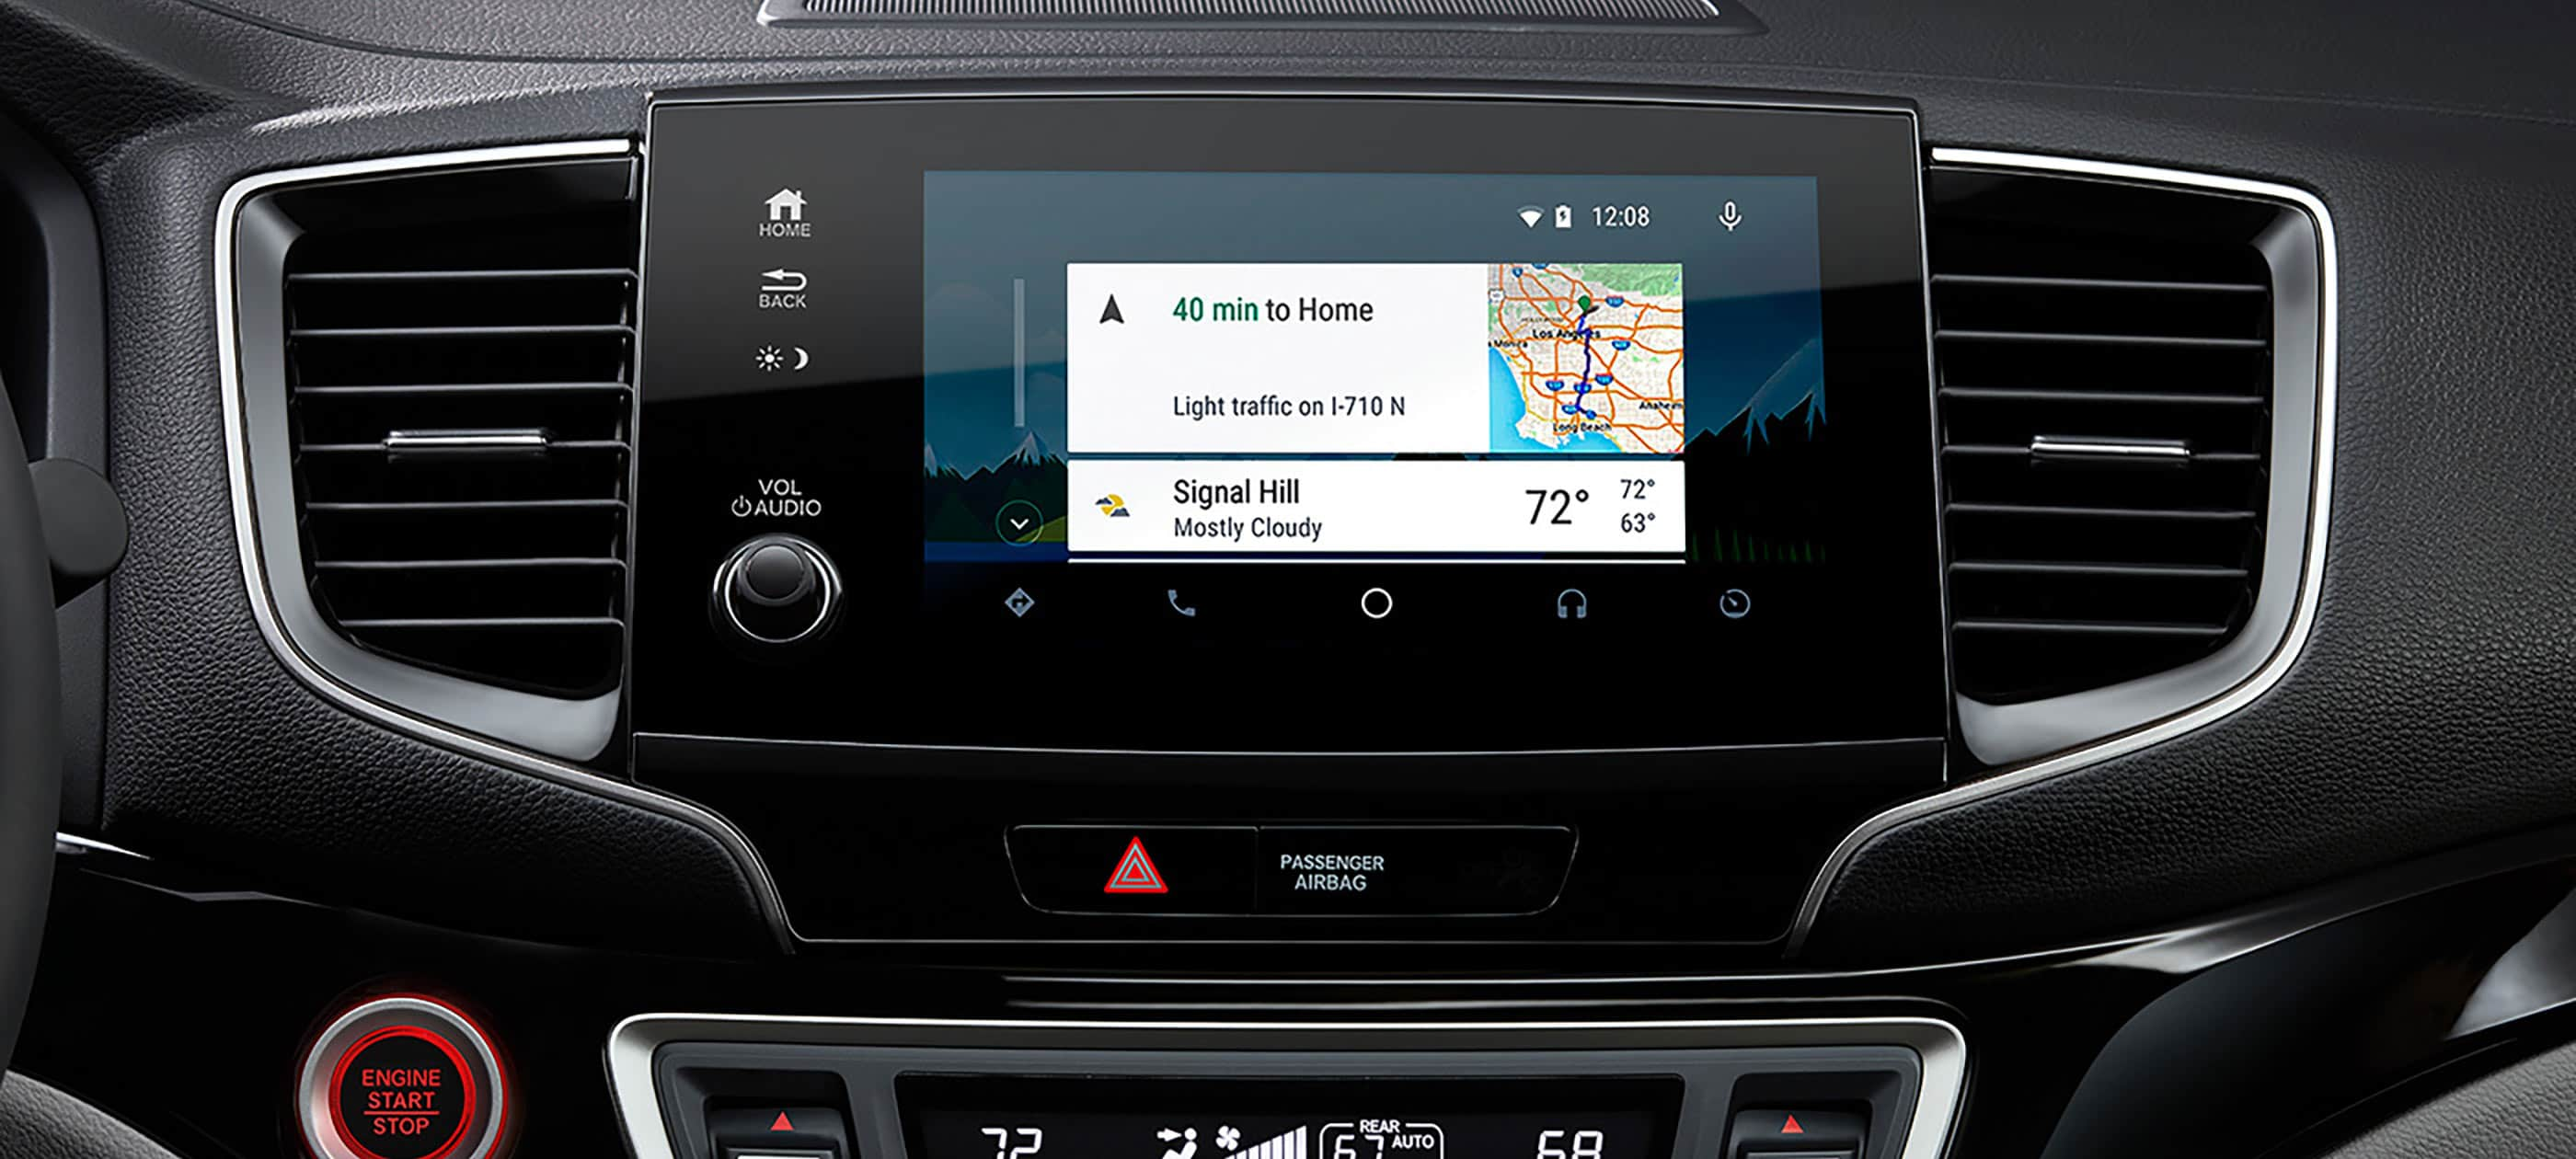 Integración con Android Auto™ Disponible